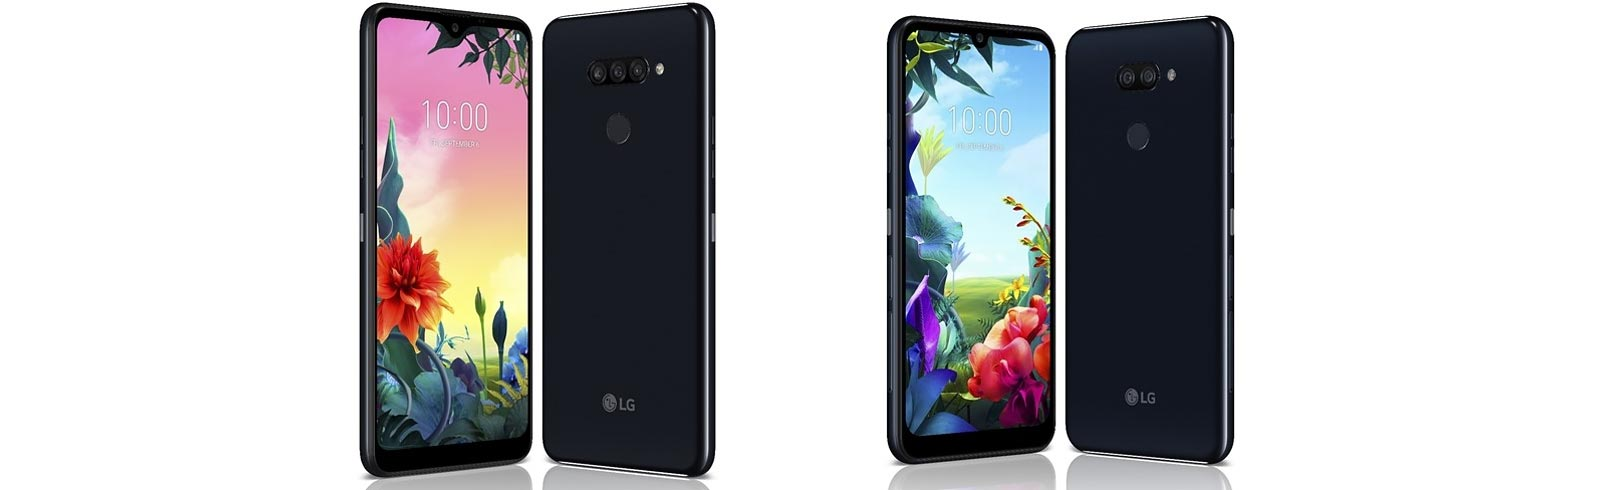 LG announces two budget smartphones - the LG K50S and the LG K40S